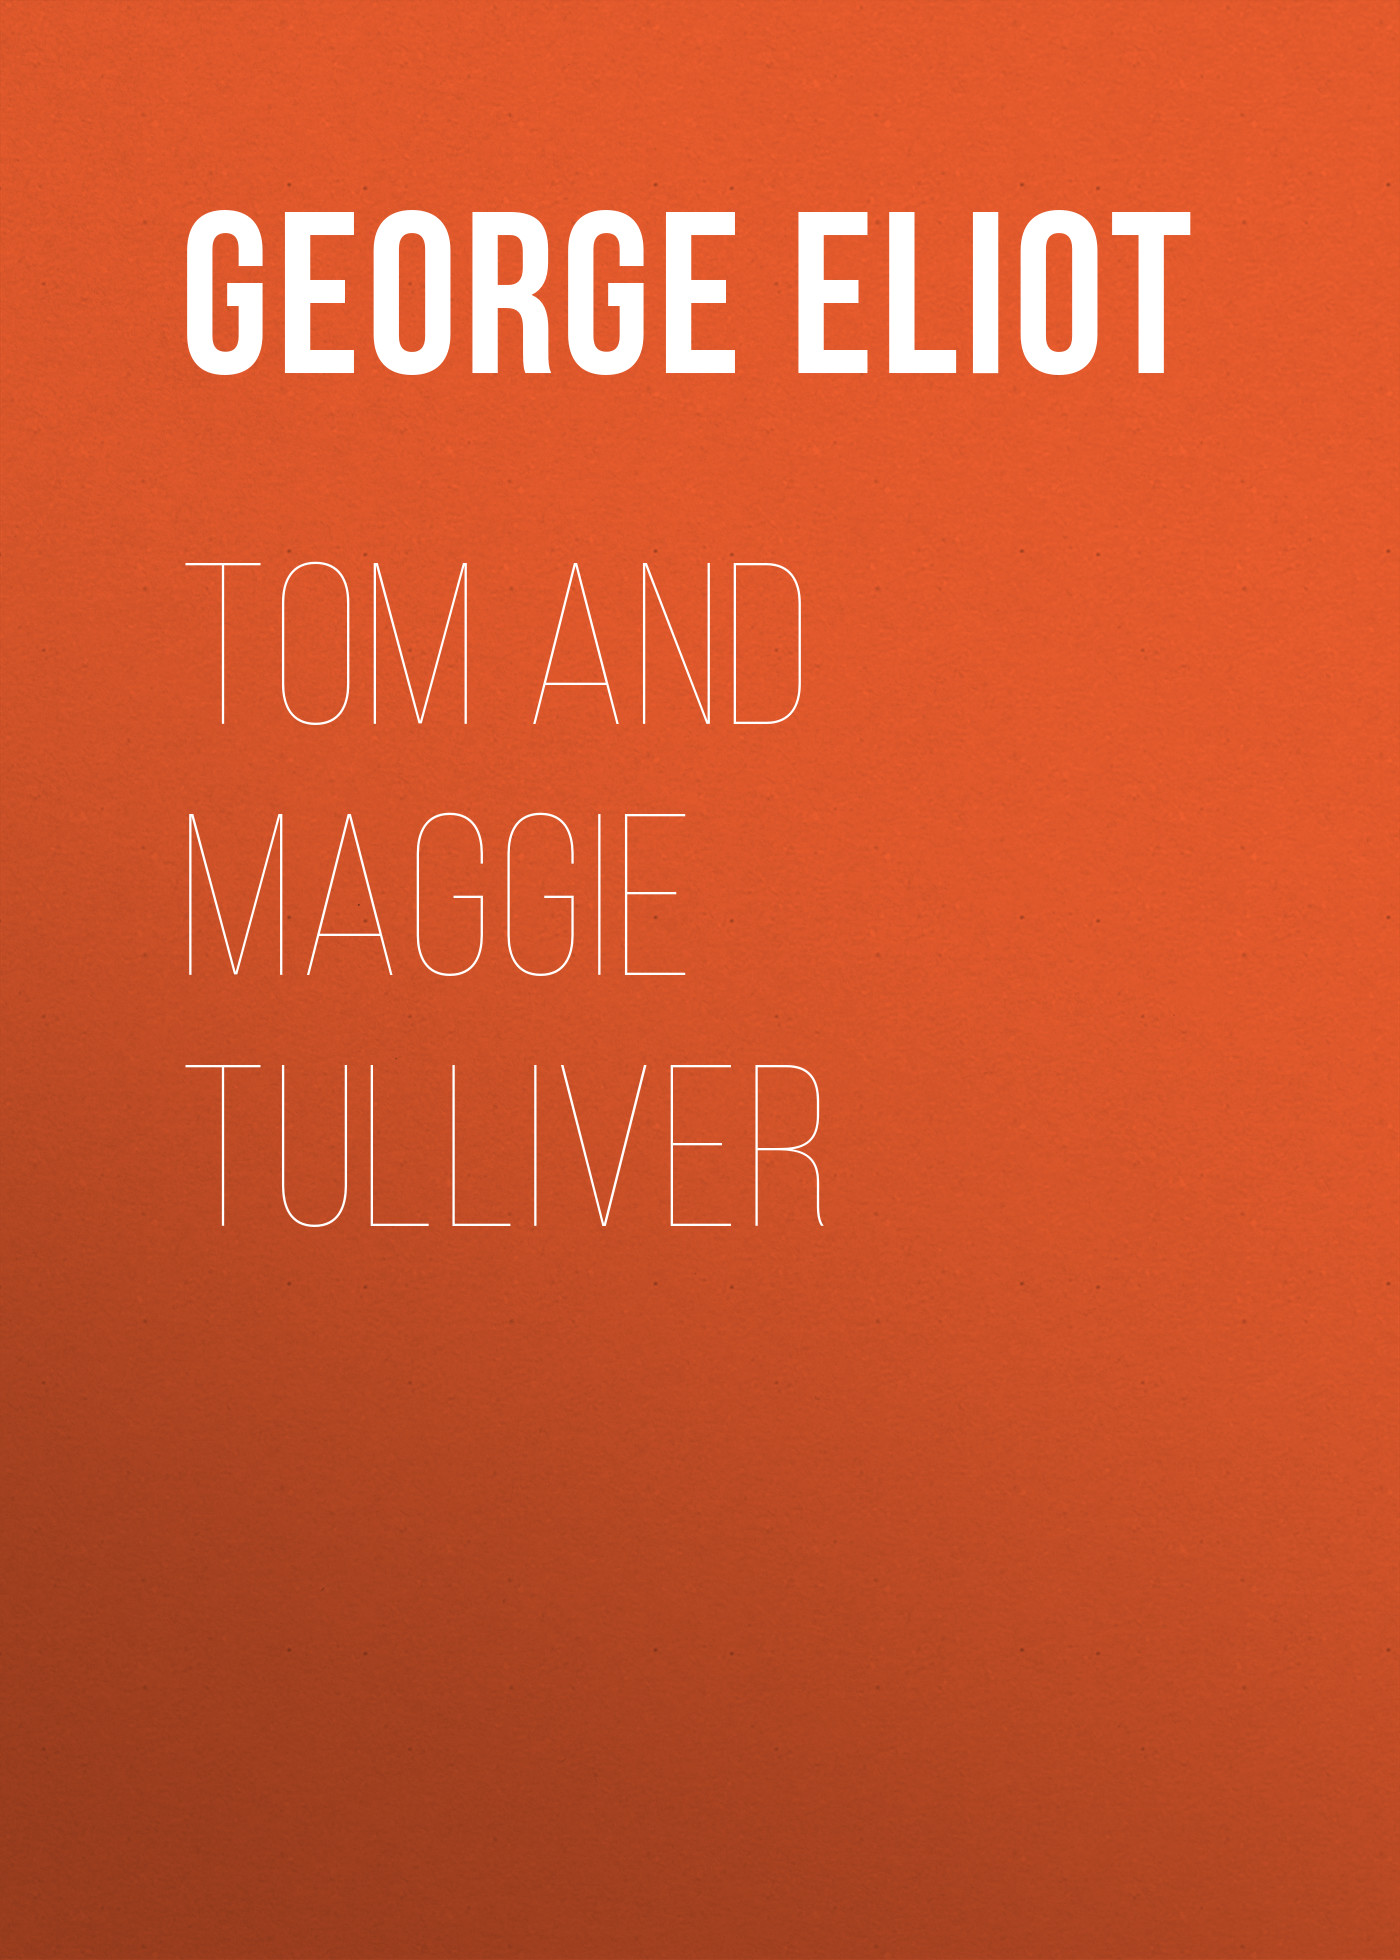 Джордж Элиот Tom and Maggie Tulliver джордж элиот brother jacob